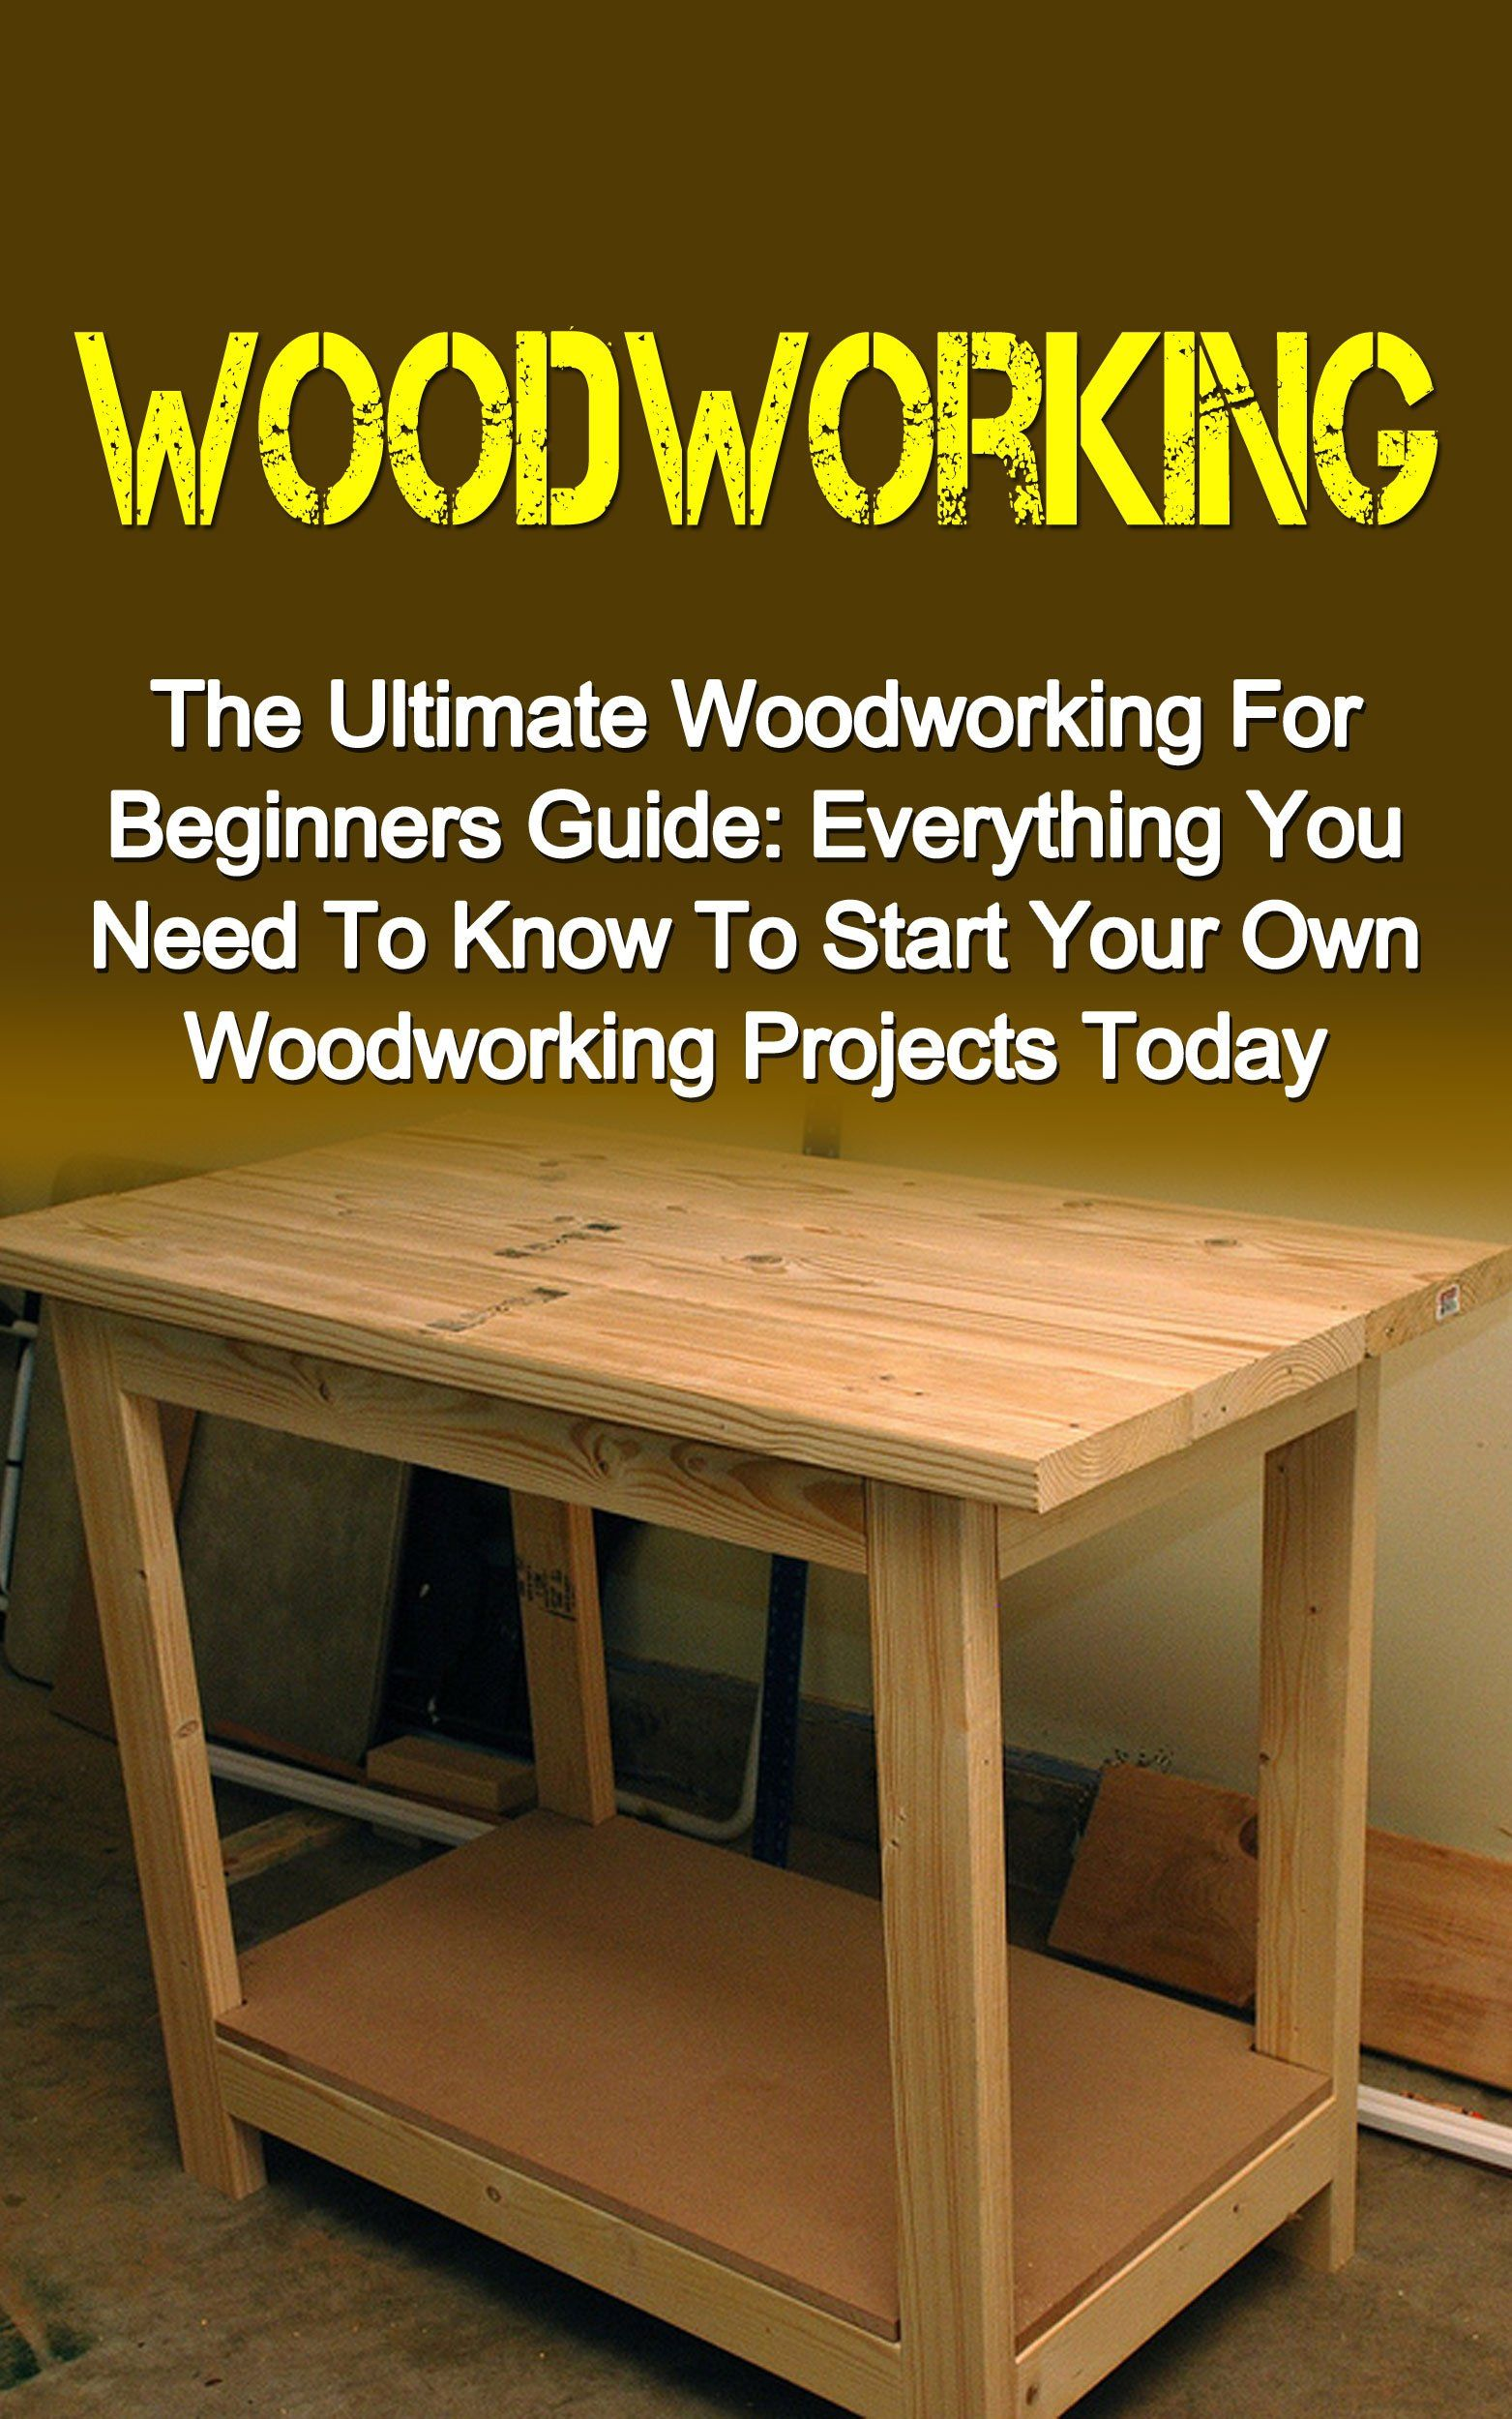 Woodworking The Ultimate Woodworking For Beginners Guide Everything You Need To Learn Woodworking Beginner Woodworking Projects Woodworking Projects For Kids